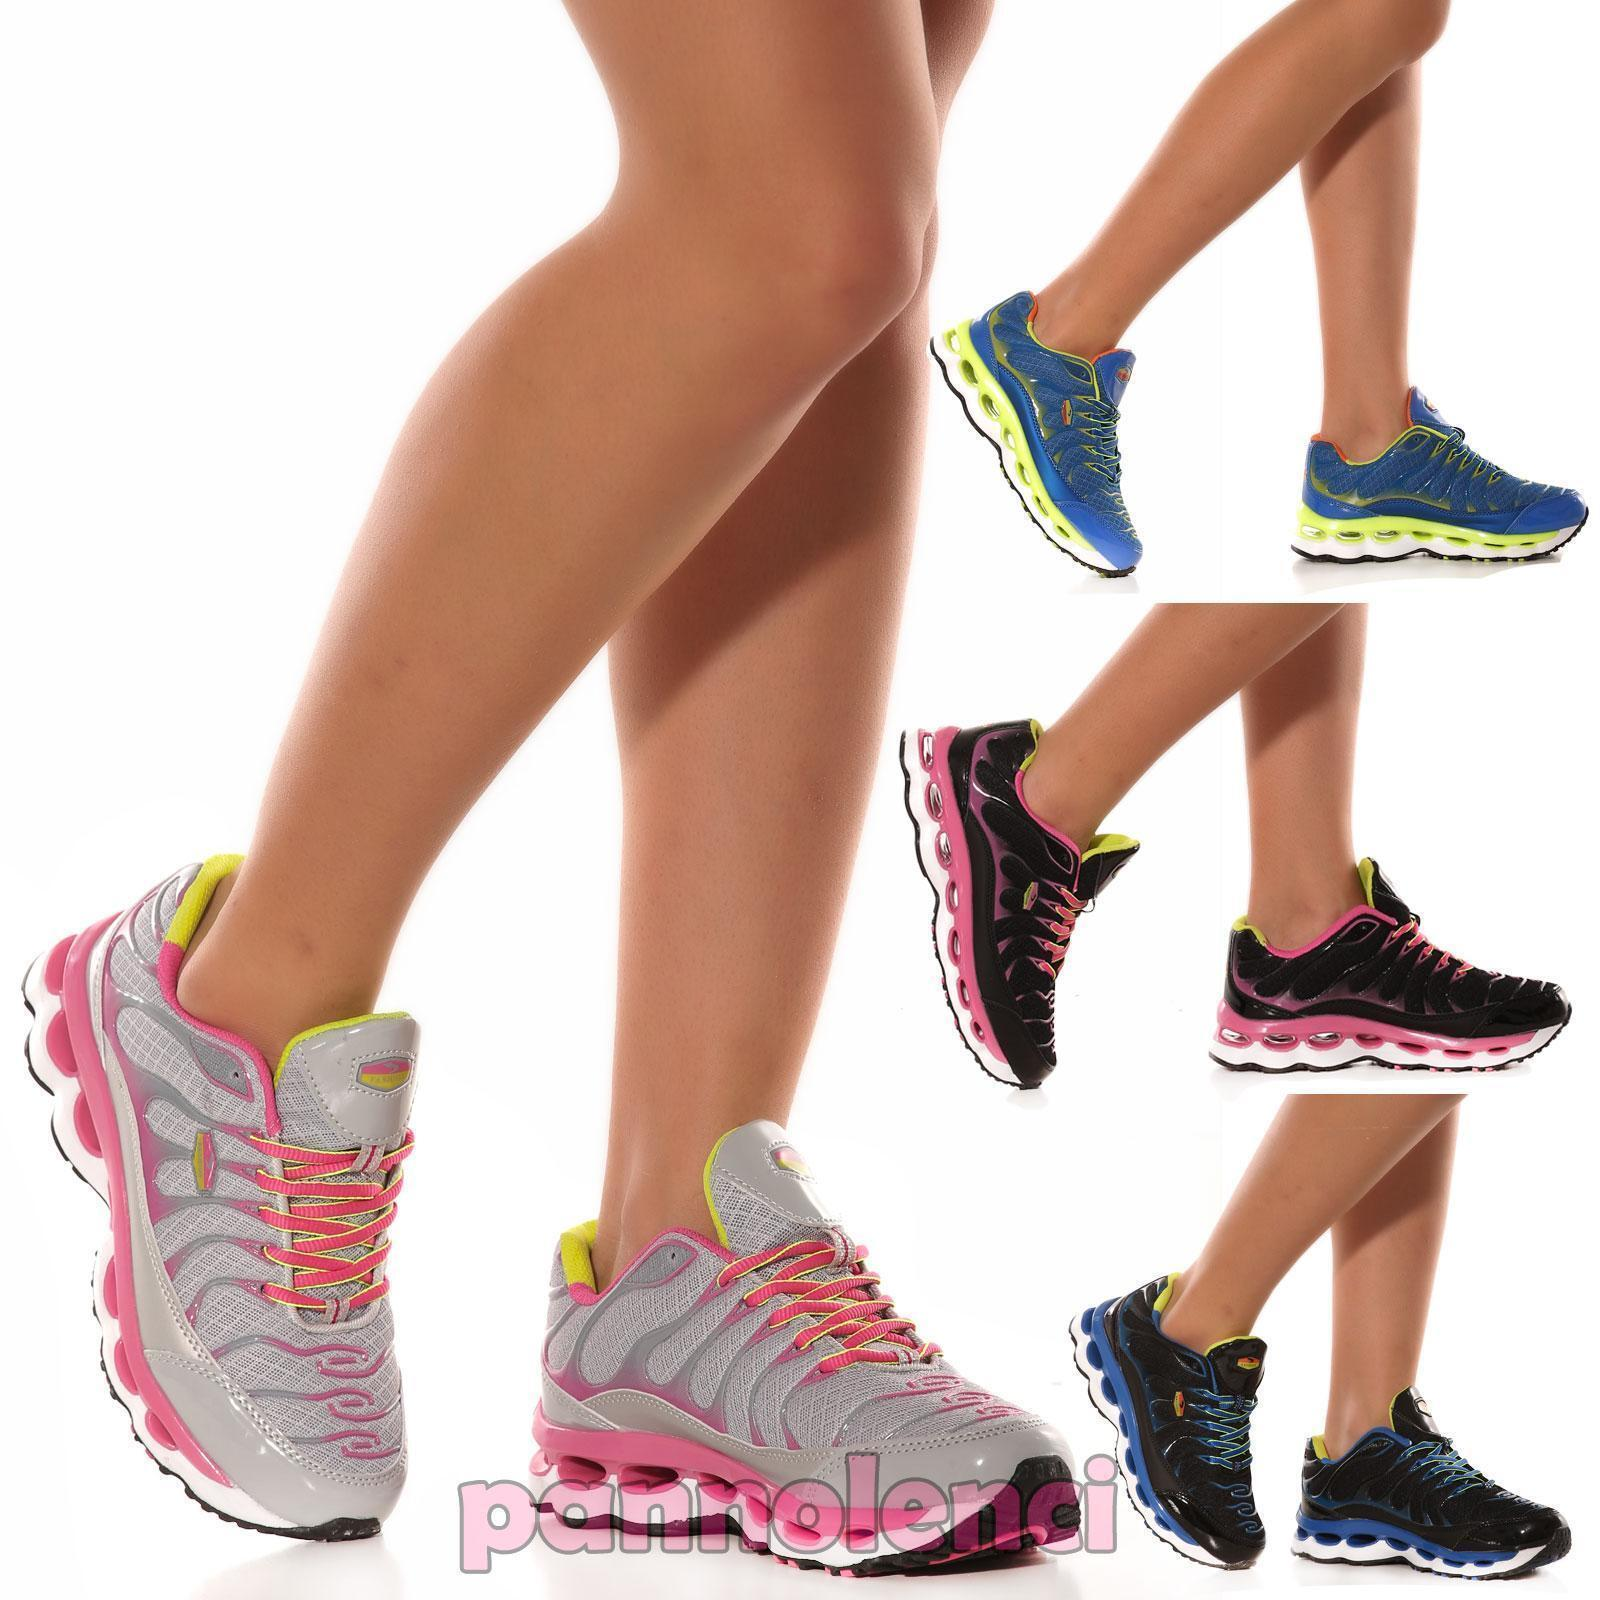 Women's fitness shoes sneakers from gym fitness Women's sports gym sports new 7127 35ac45